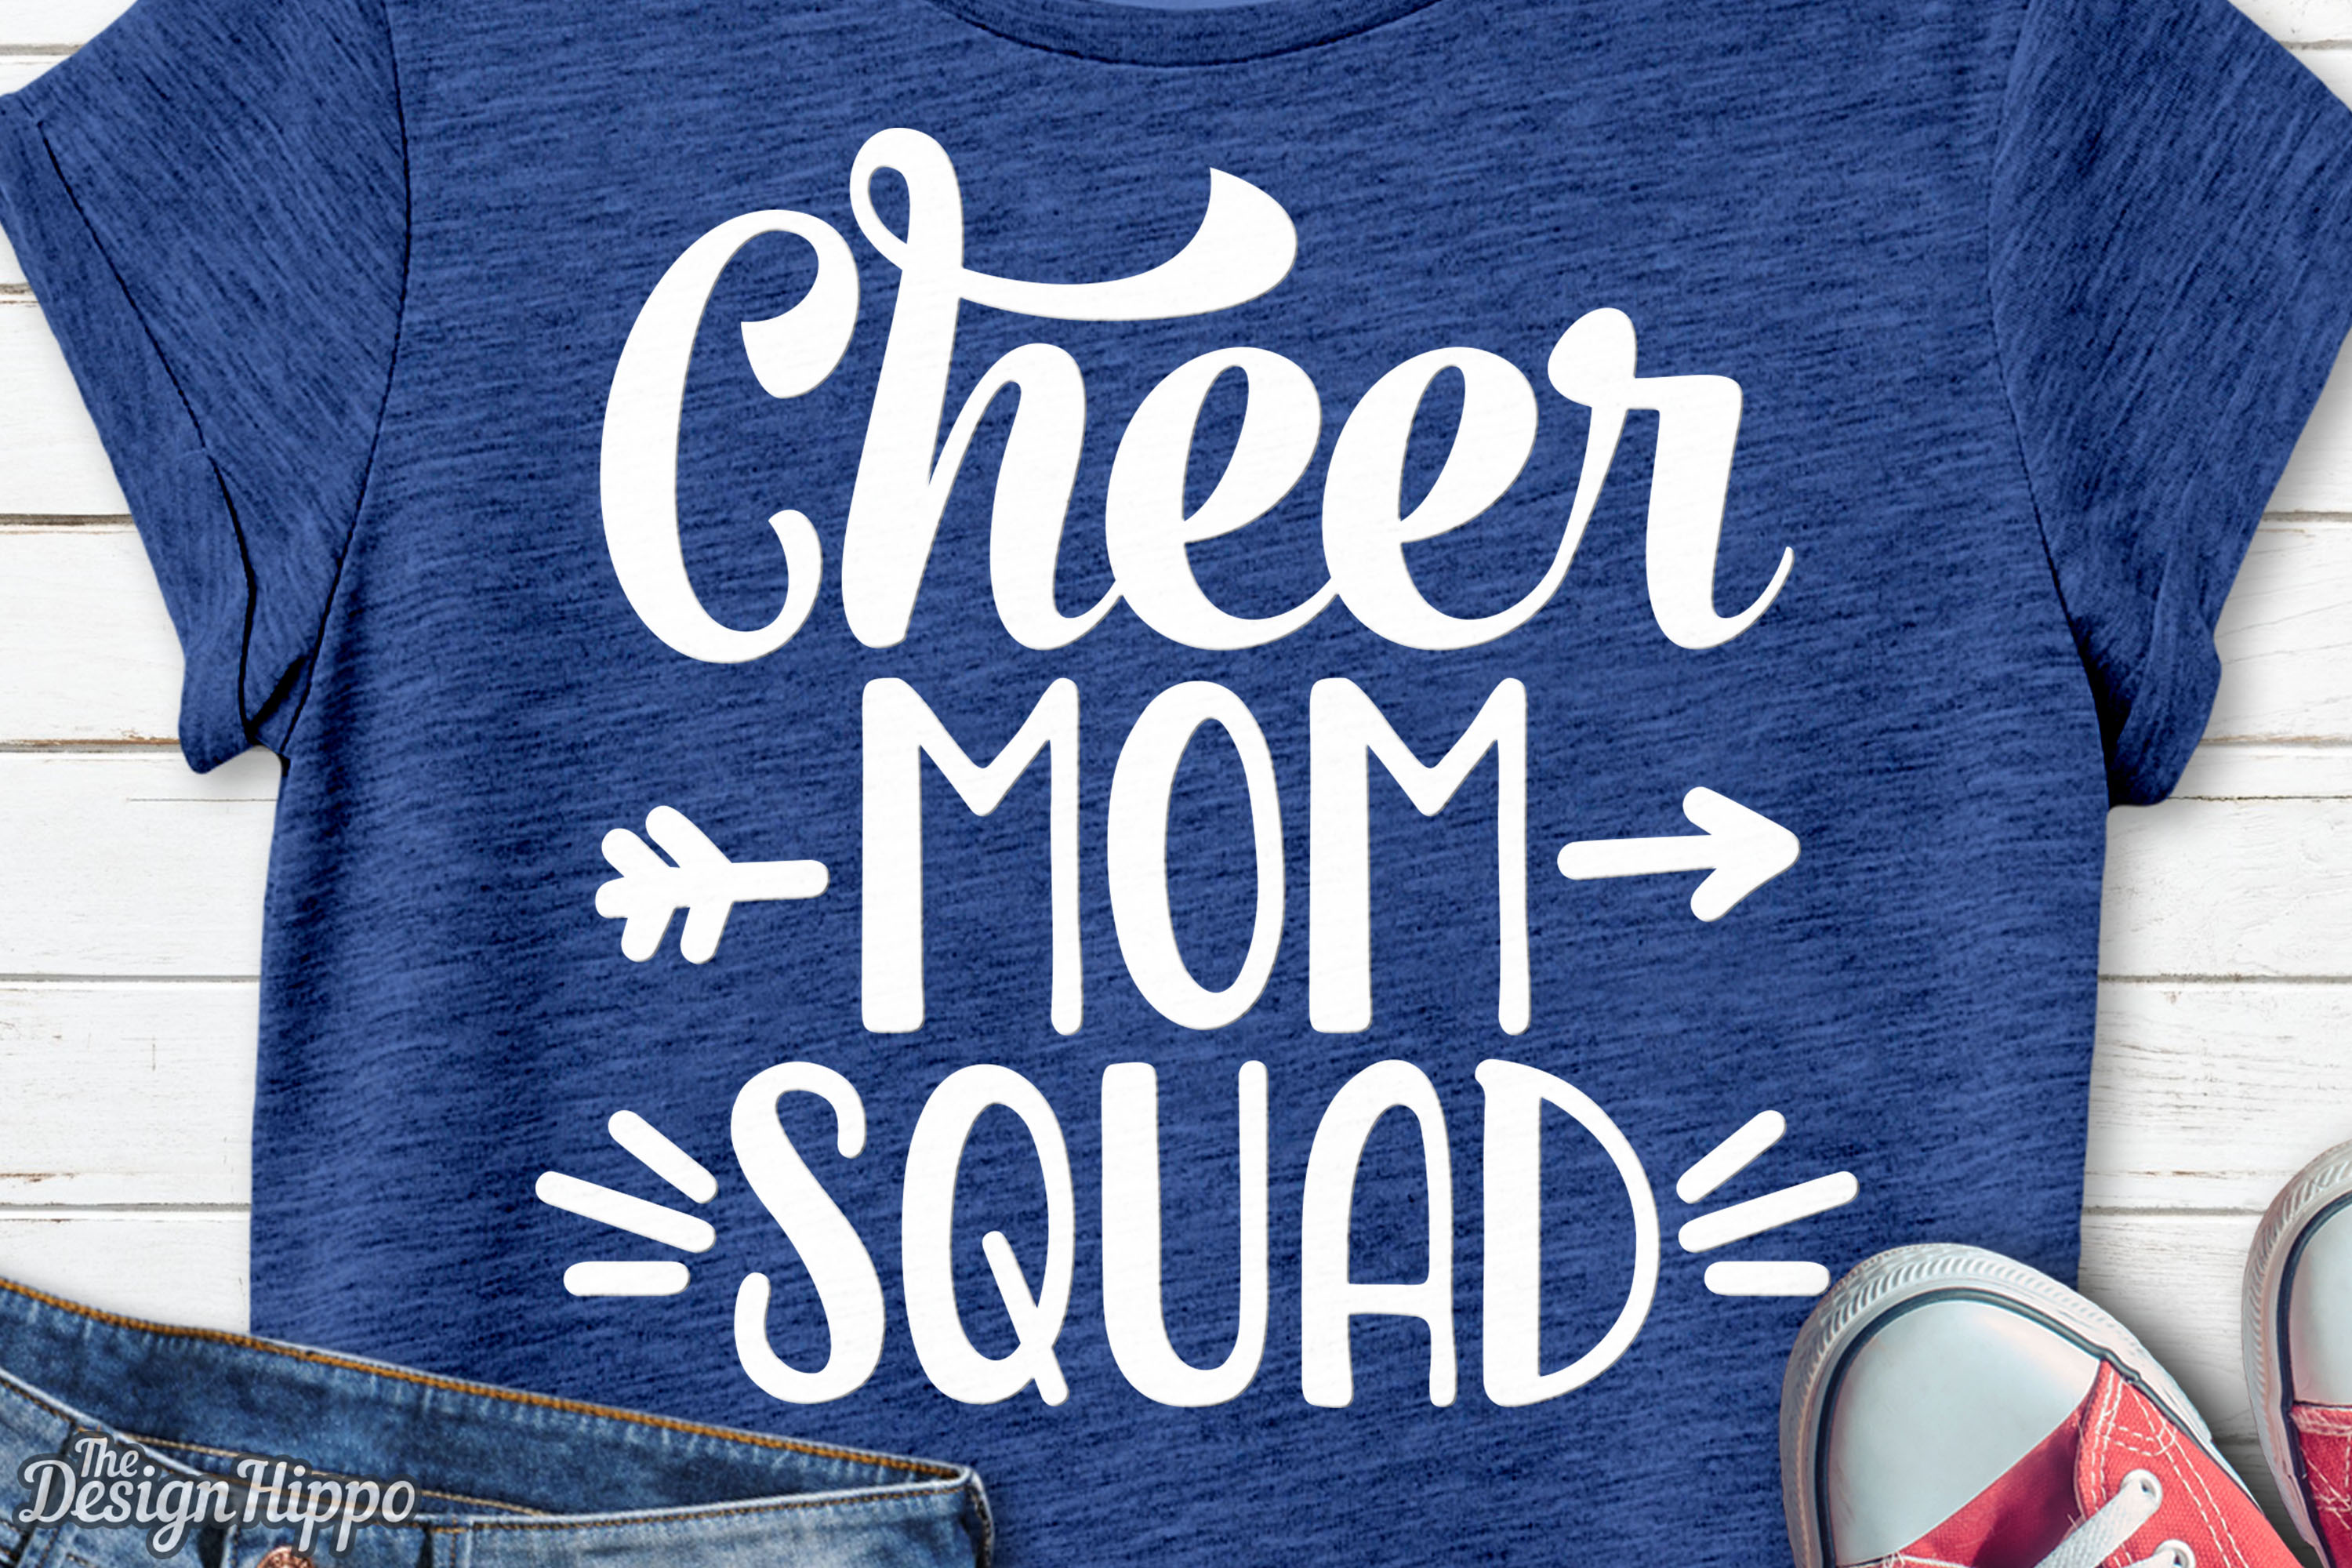 beff95ff7 ... cute cheerleading t shirts redbubble; cheer mom squad svg graphic by  thedesignhippo creative fabrica ...